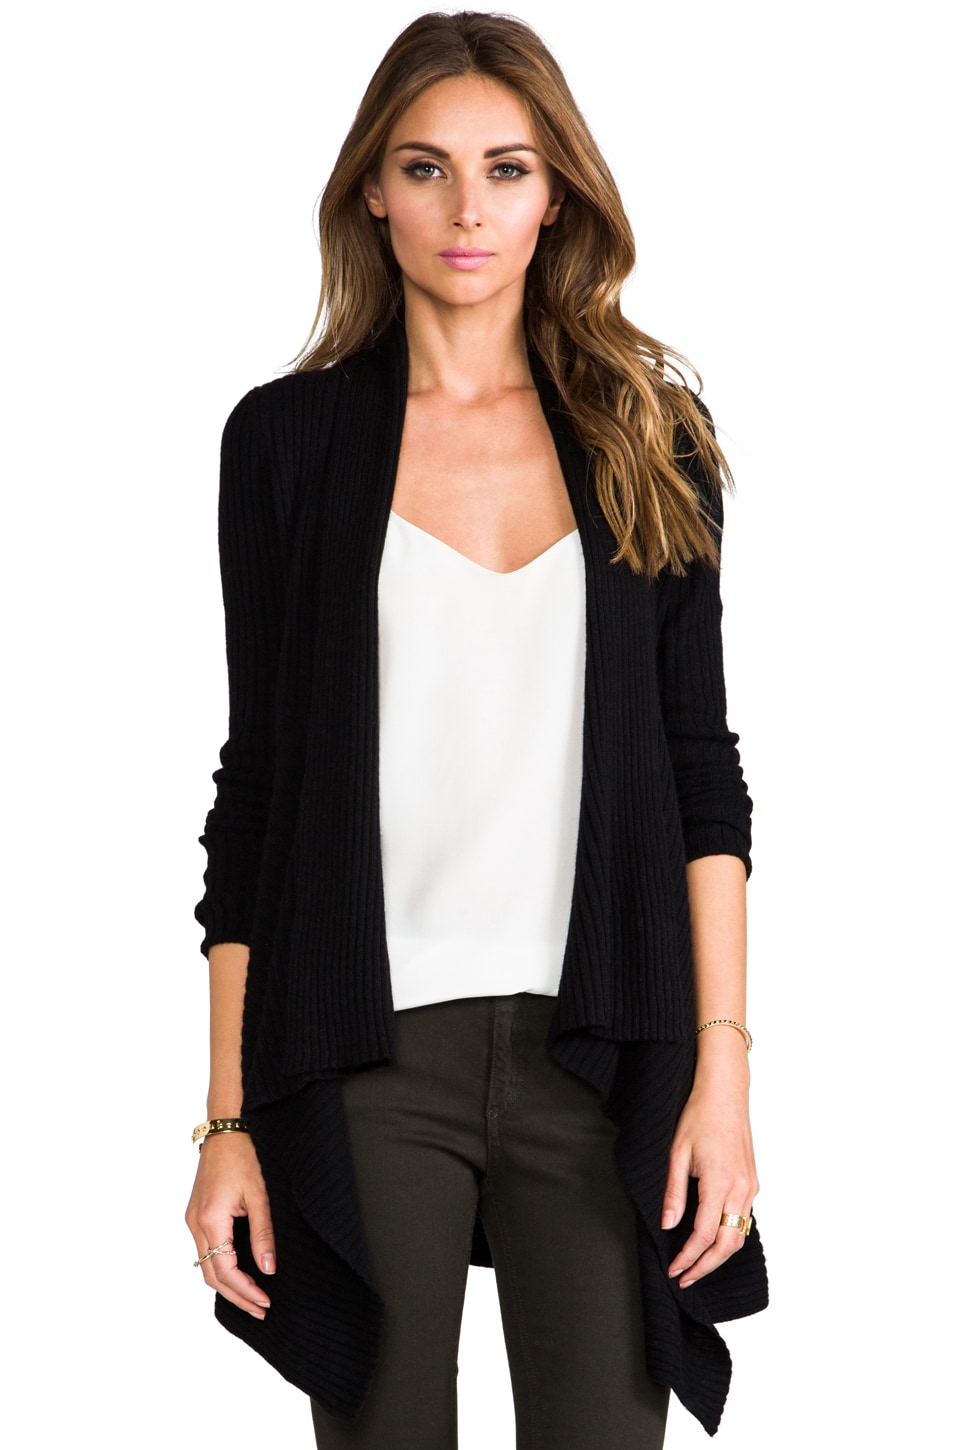 Autumn Cashmere Rib Drape Cardigan in Black